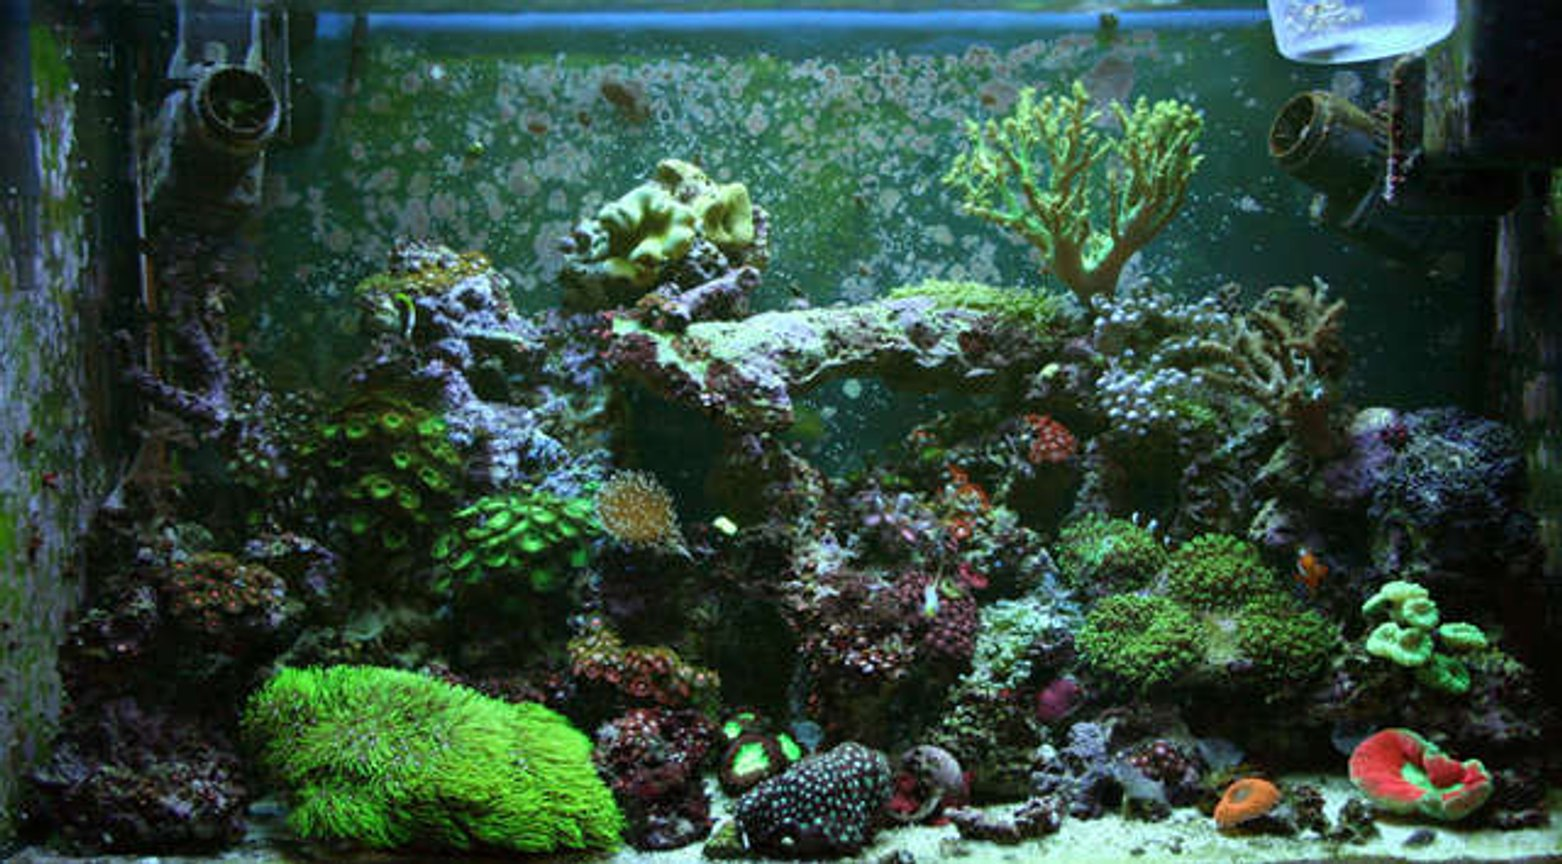 32 gallons reef tank (mostly live coral and fish) - 32g Reef Tunze Doc Skimmer 9002 Aqualight Pro 24 MH 150w 10 000K Reeflux + 2-65w actinics 50 lbs LR + 2 SEIO 620 Fish's & cleanup crew